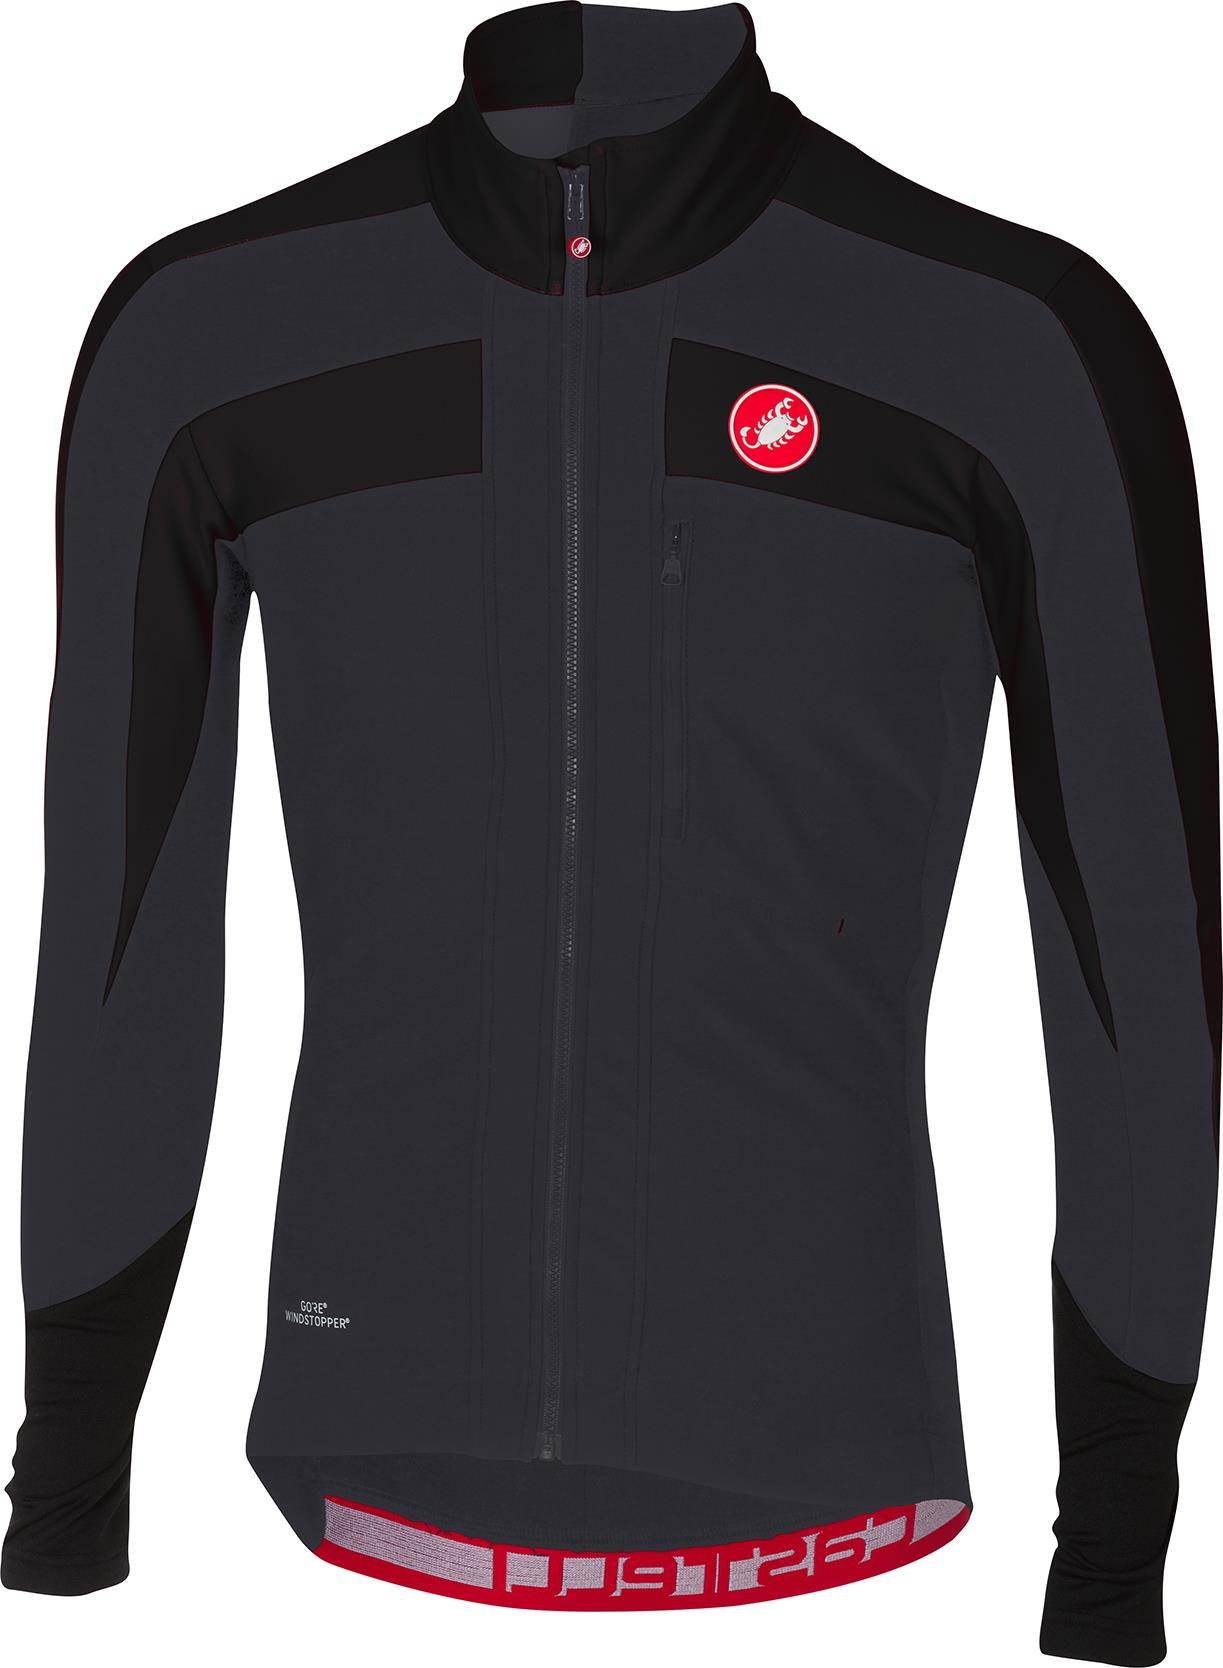 Castelli Trasparente 4 Long Sleeve Cycling Jersey - AW18